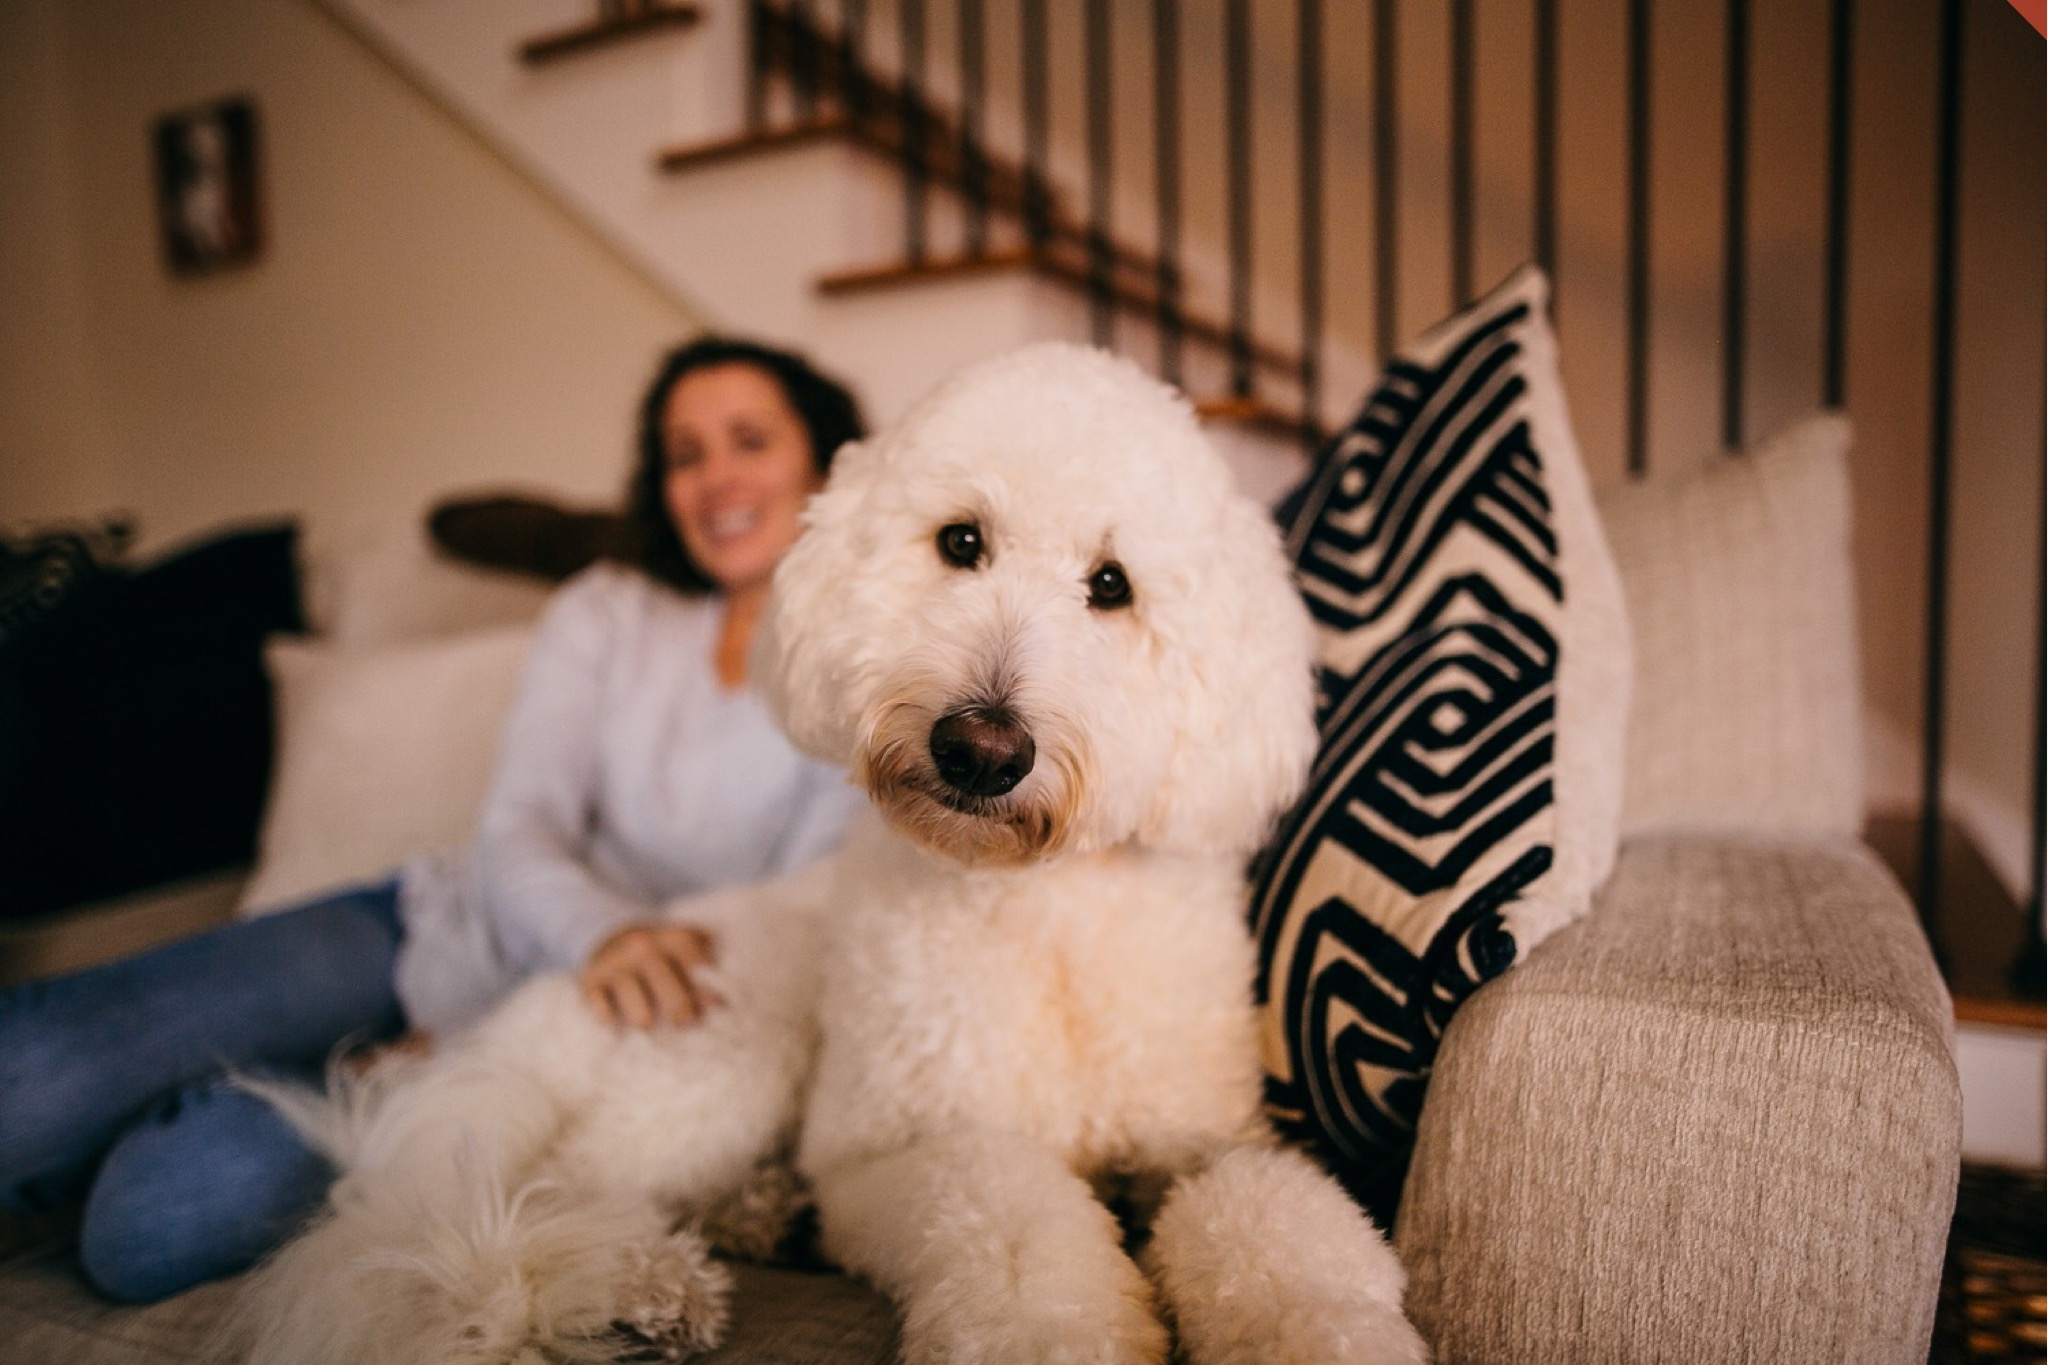 A woman pets a white goldendoodle on a grey couch.